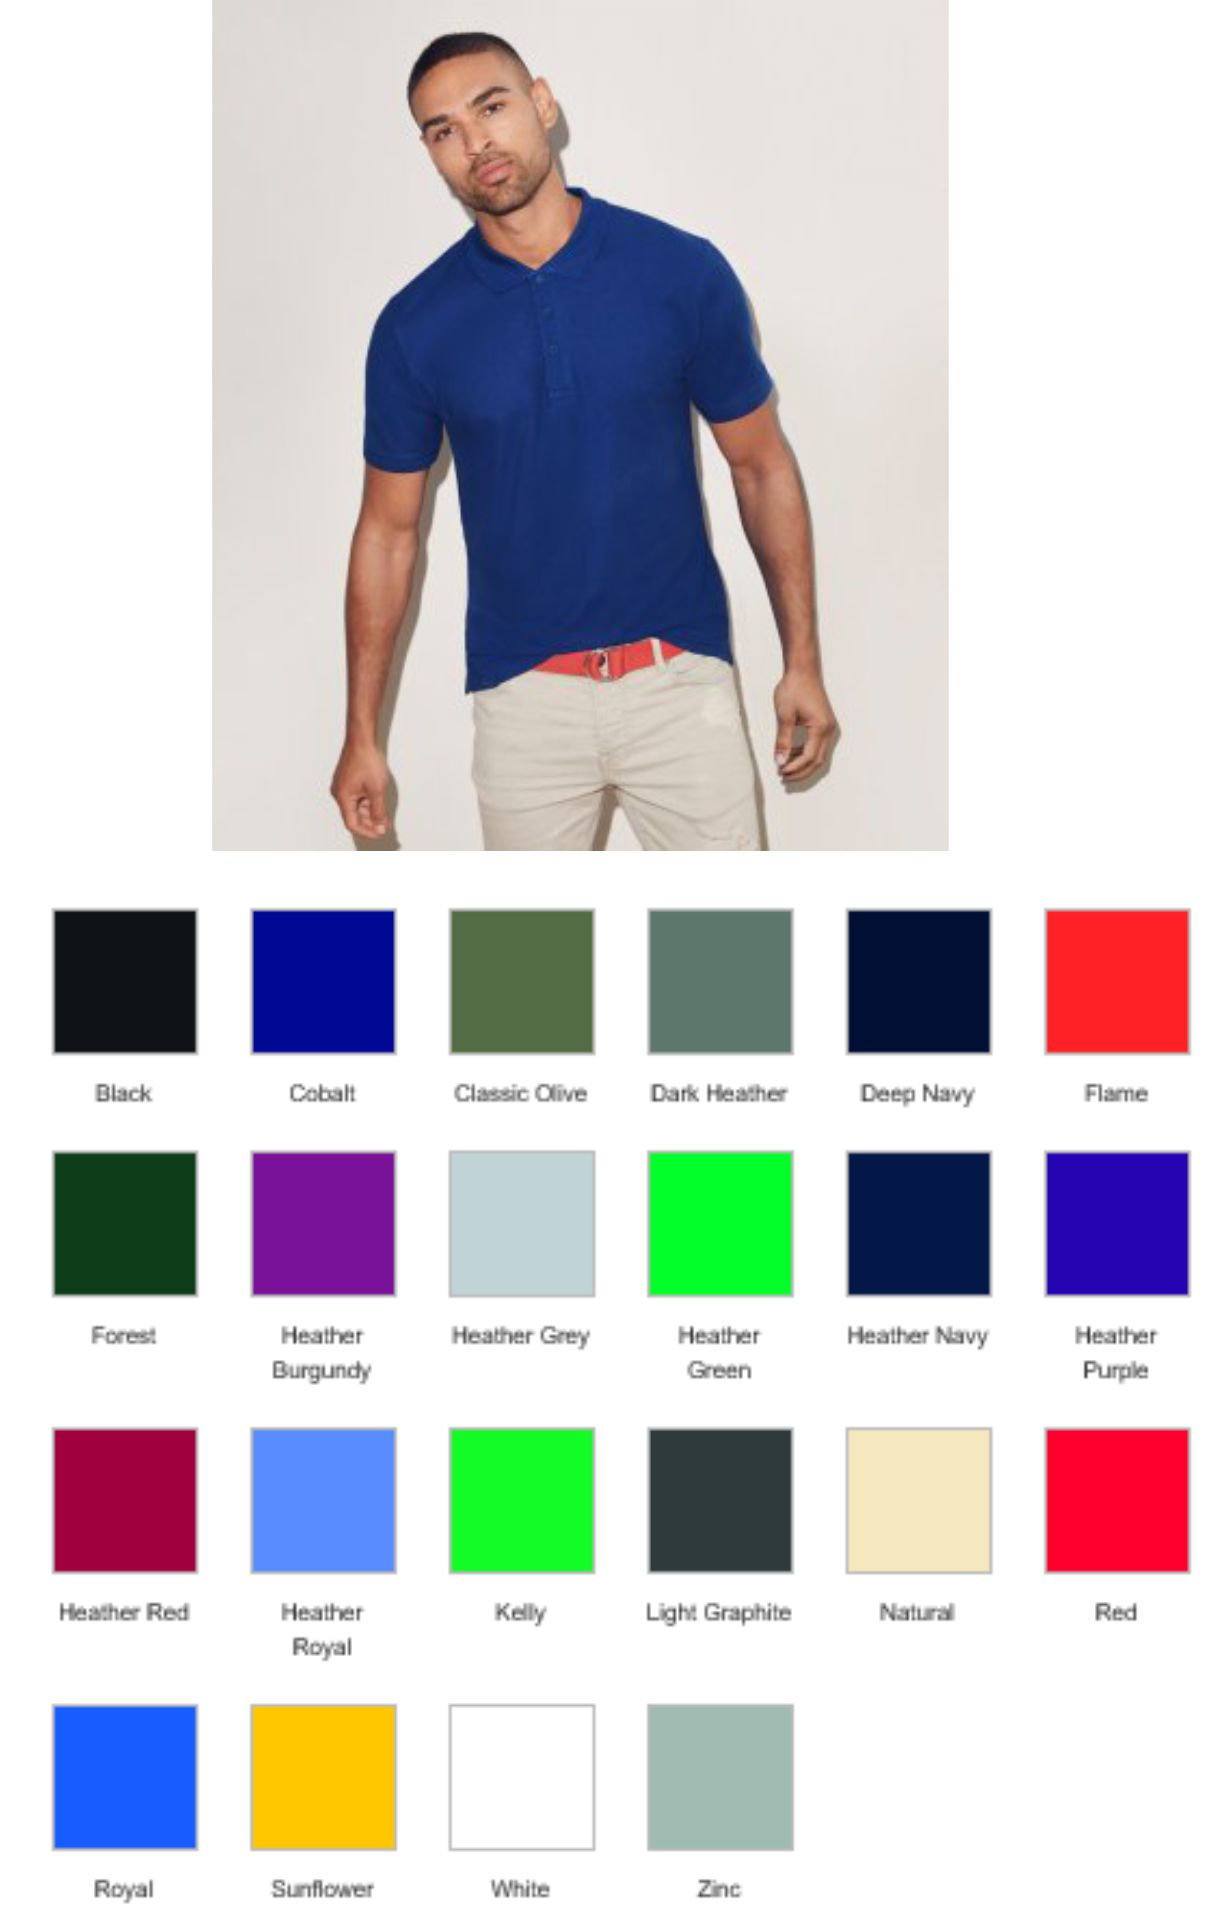 Fruit of the Loom SS220 Iconic Pique Polo Shirt